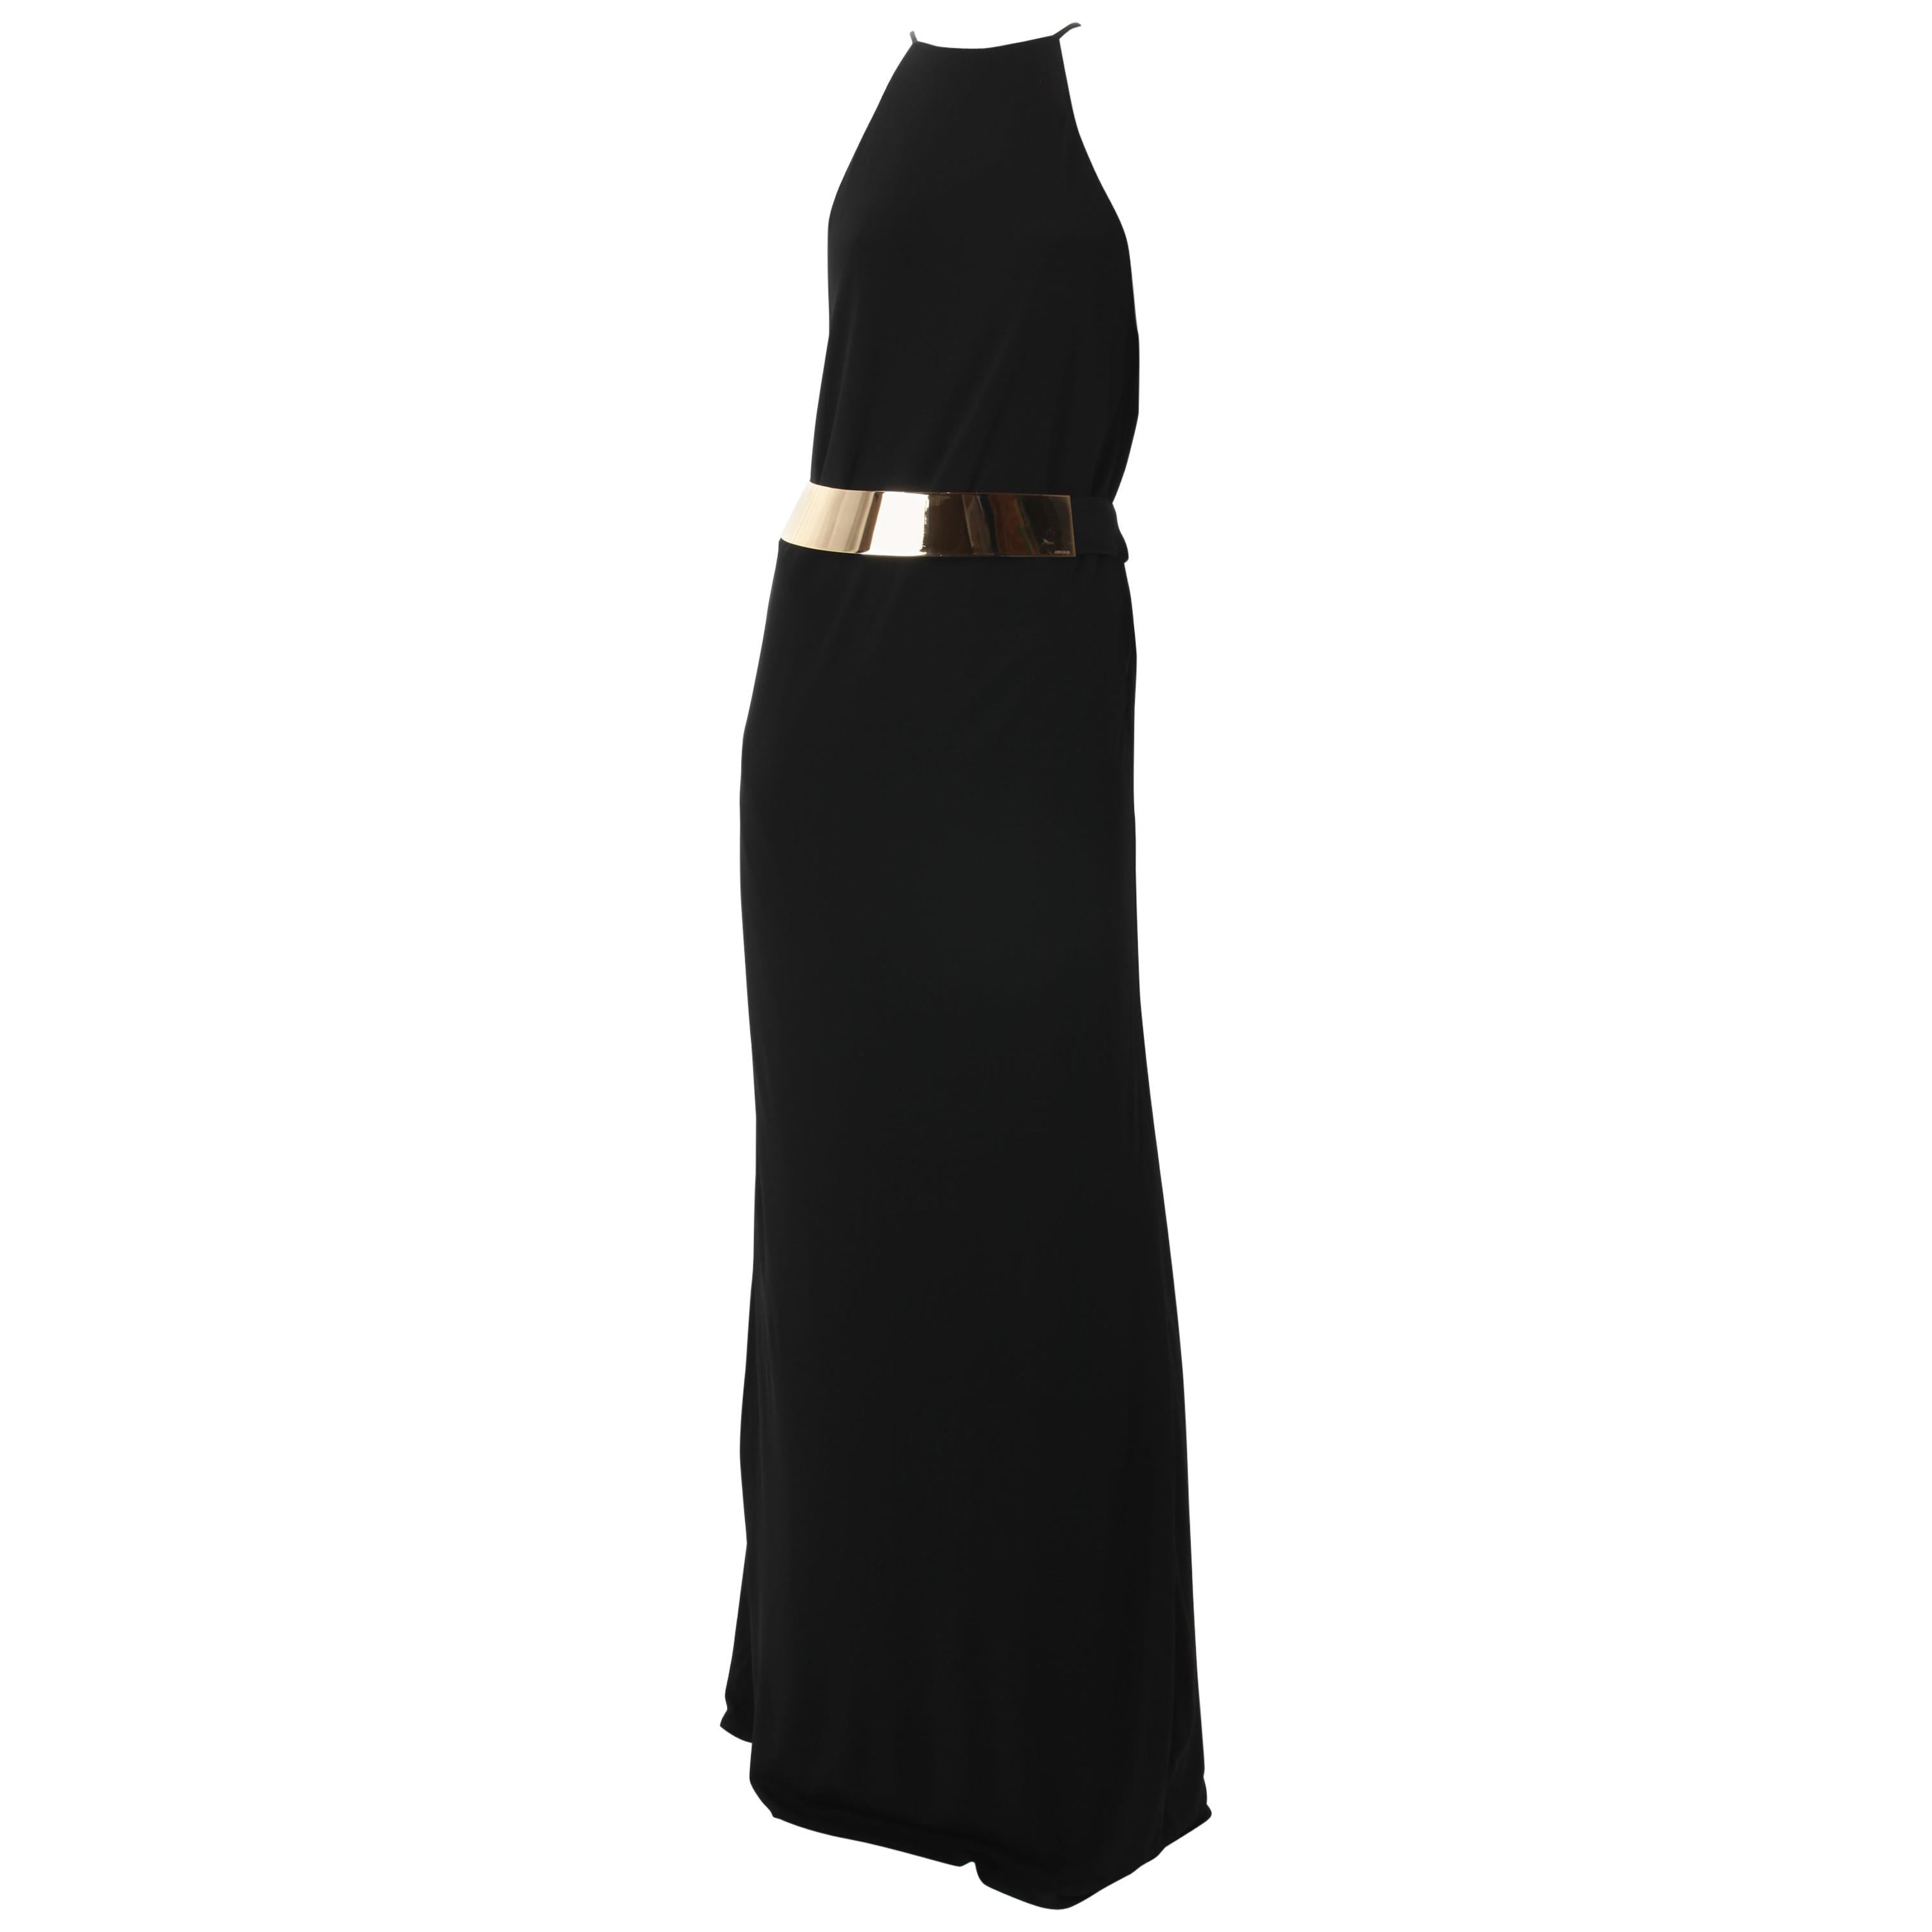 Tom Ford for Gucci Long Black Jersey Dress with Gold Belt. 1996.